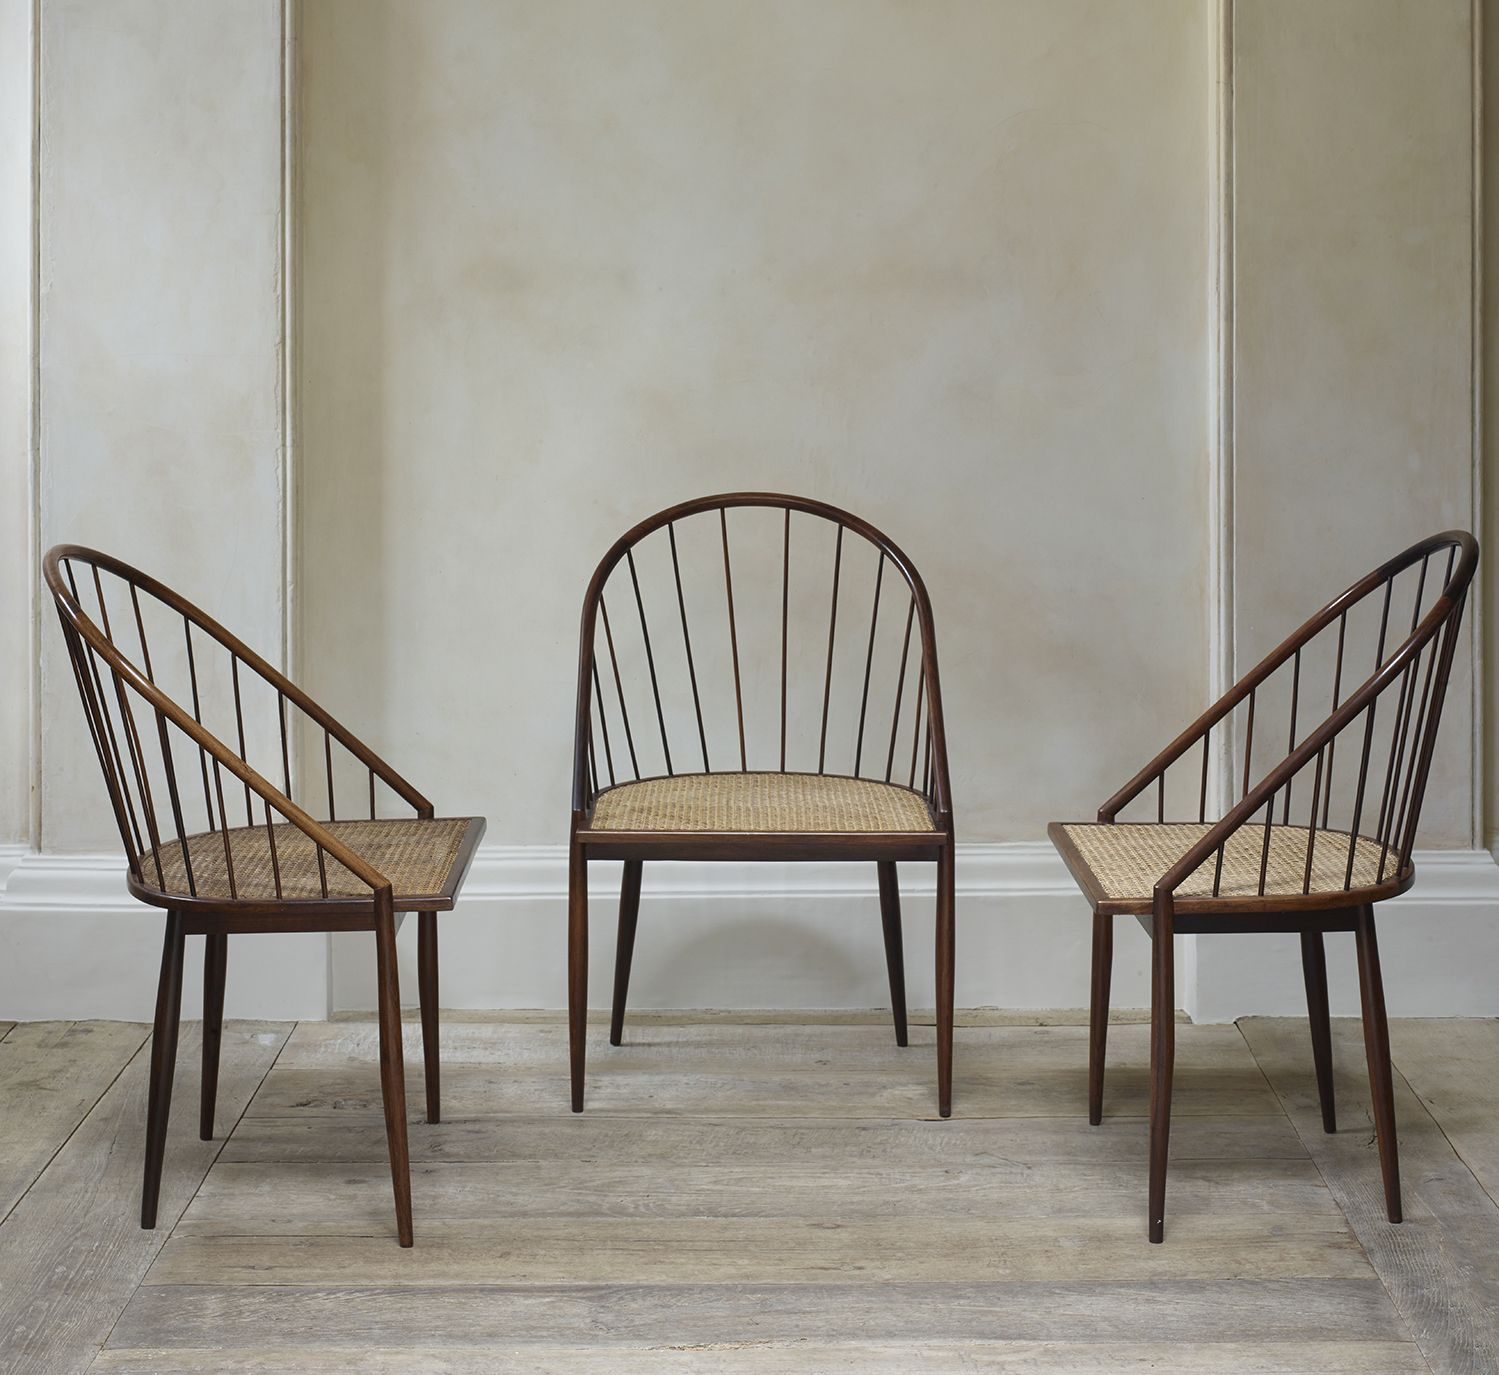 Set of Four Brazilian Spindle Back Chairs by Joaquim Tenreiro